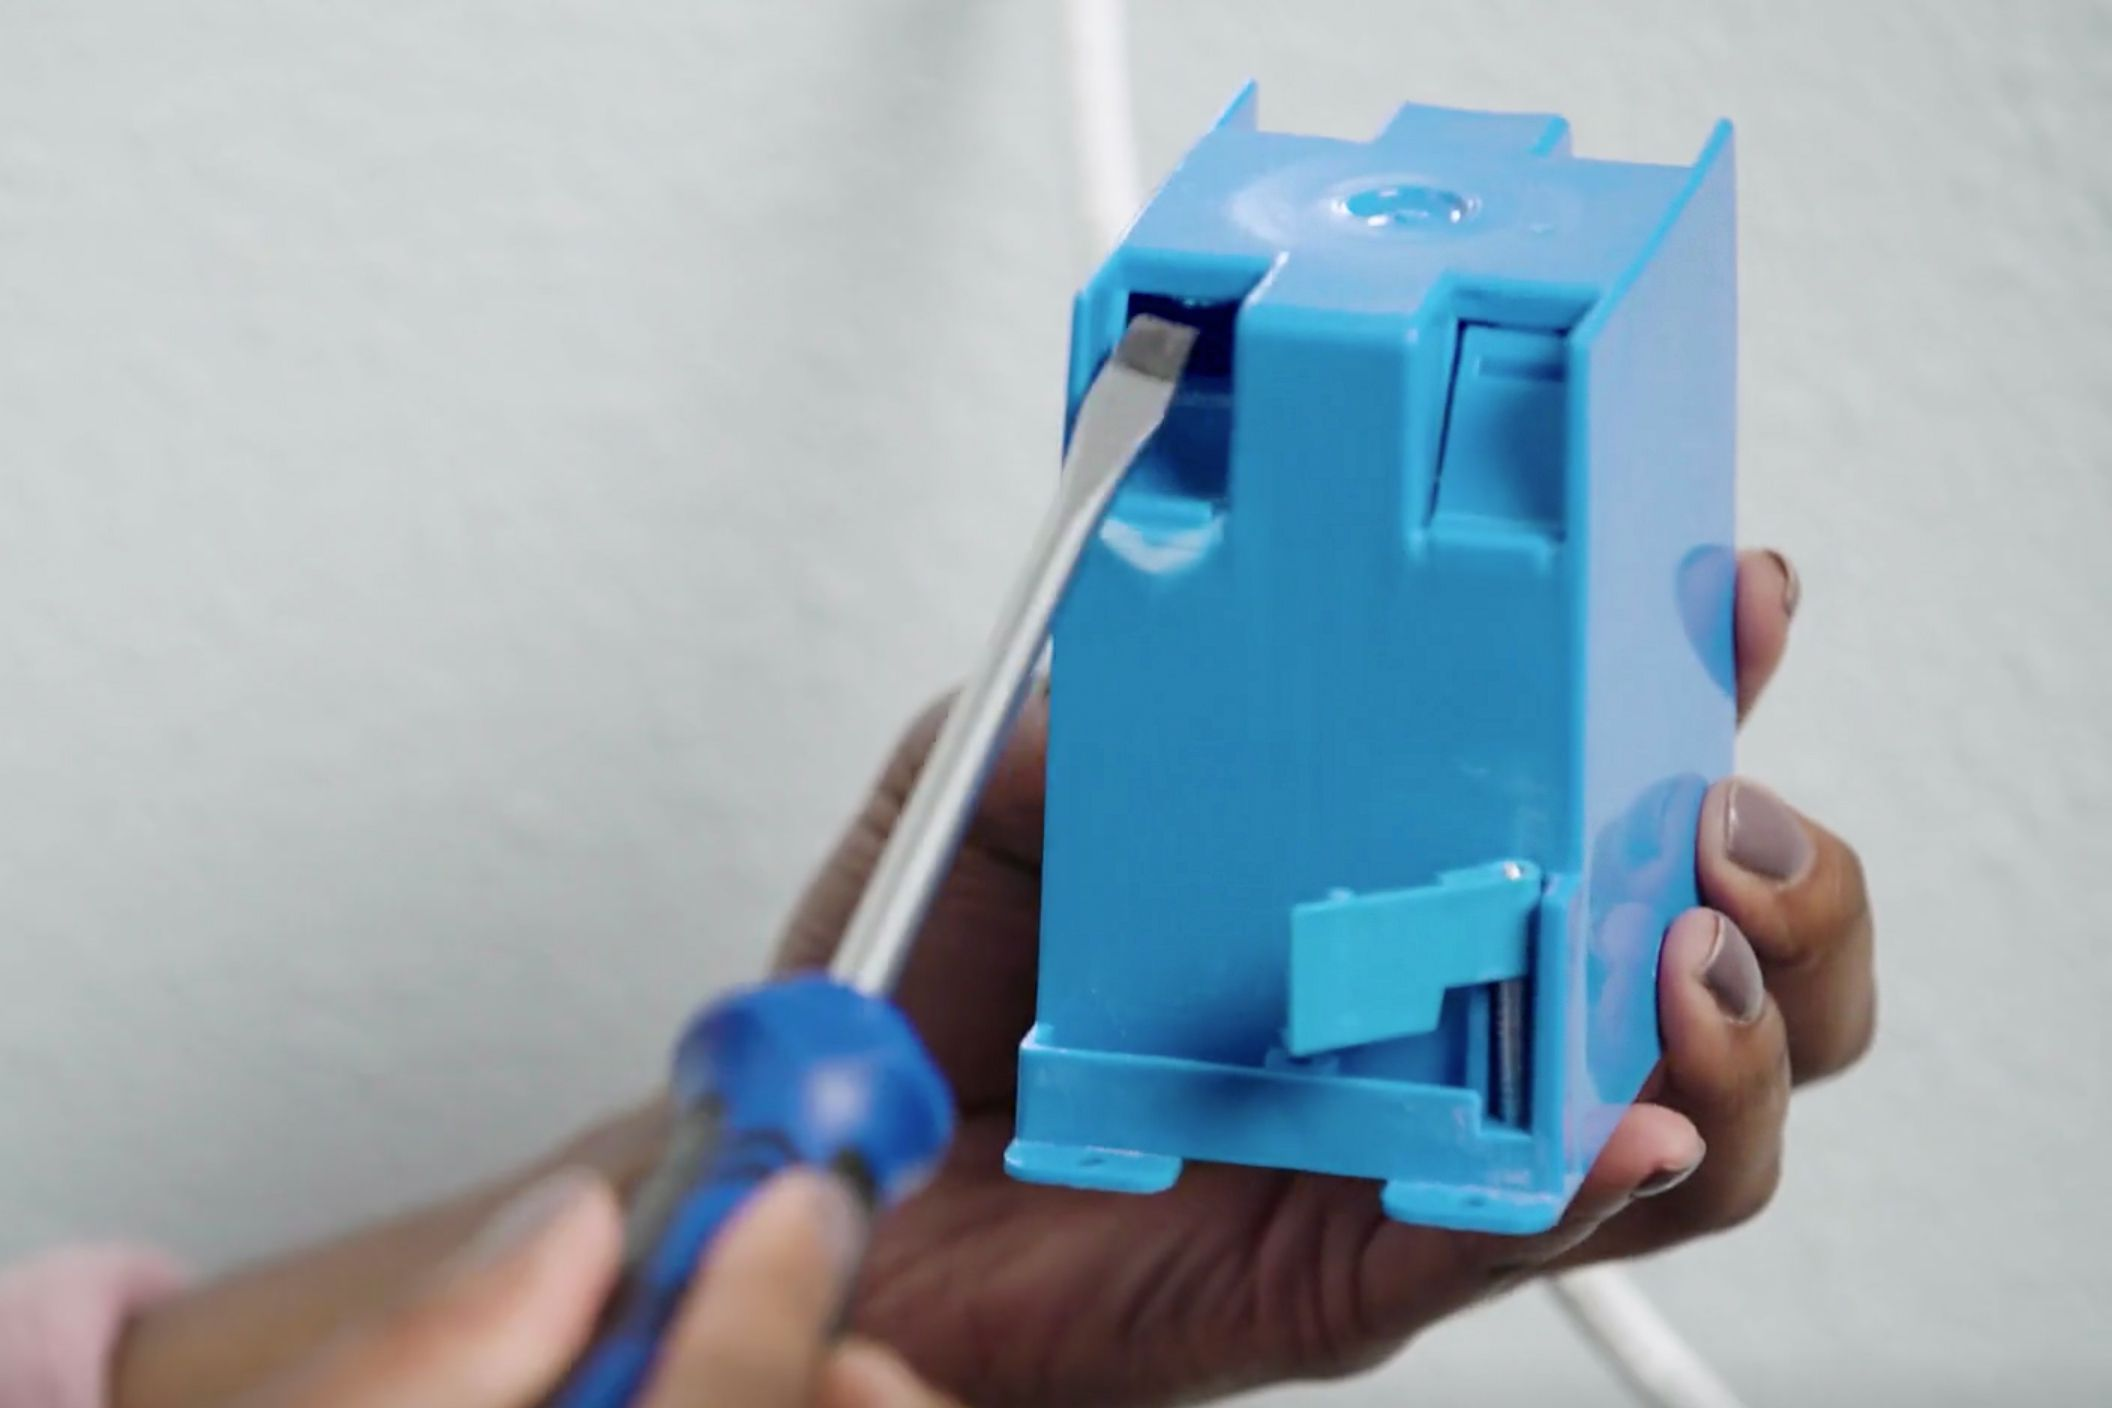 Cable clamp prepped on blue old work (retrofit) electrical box